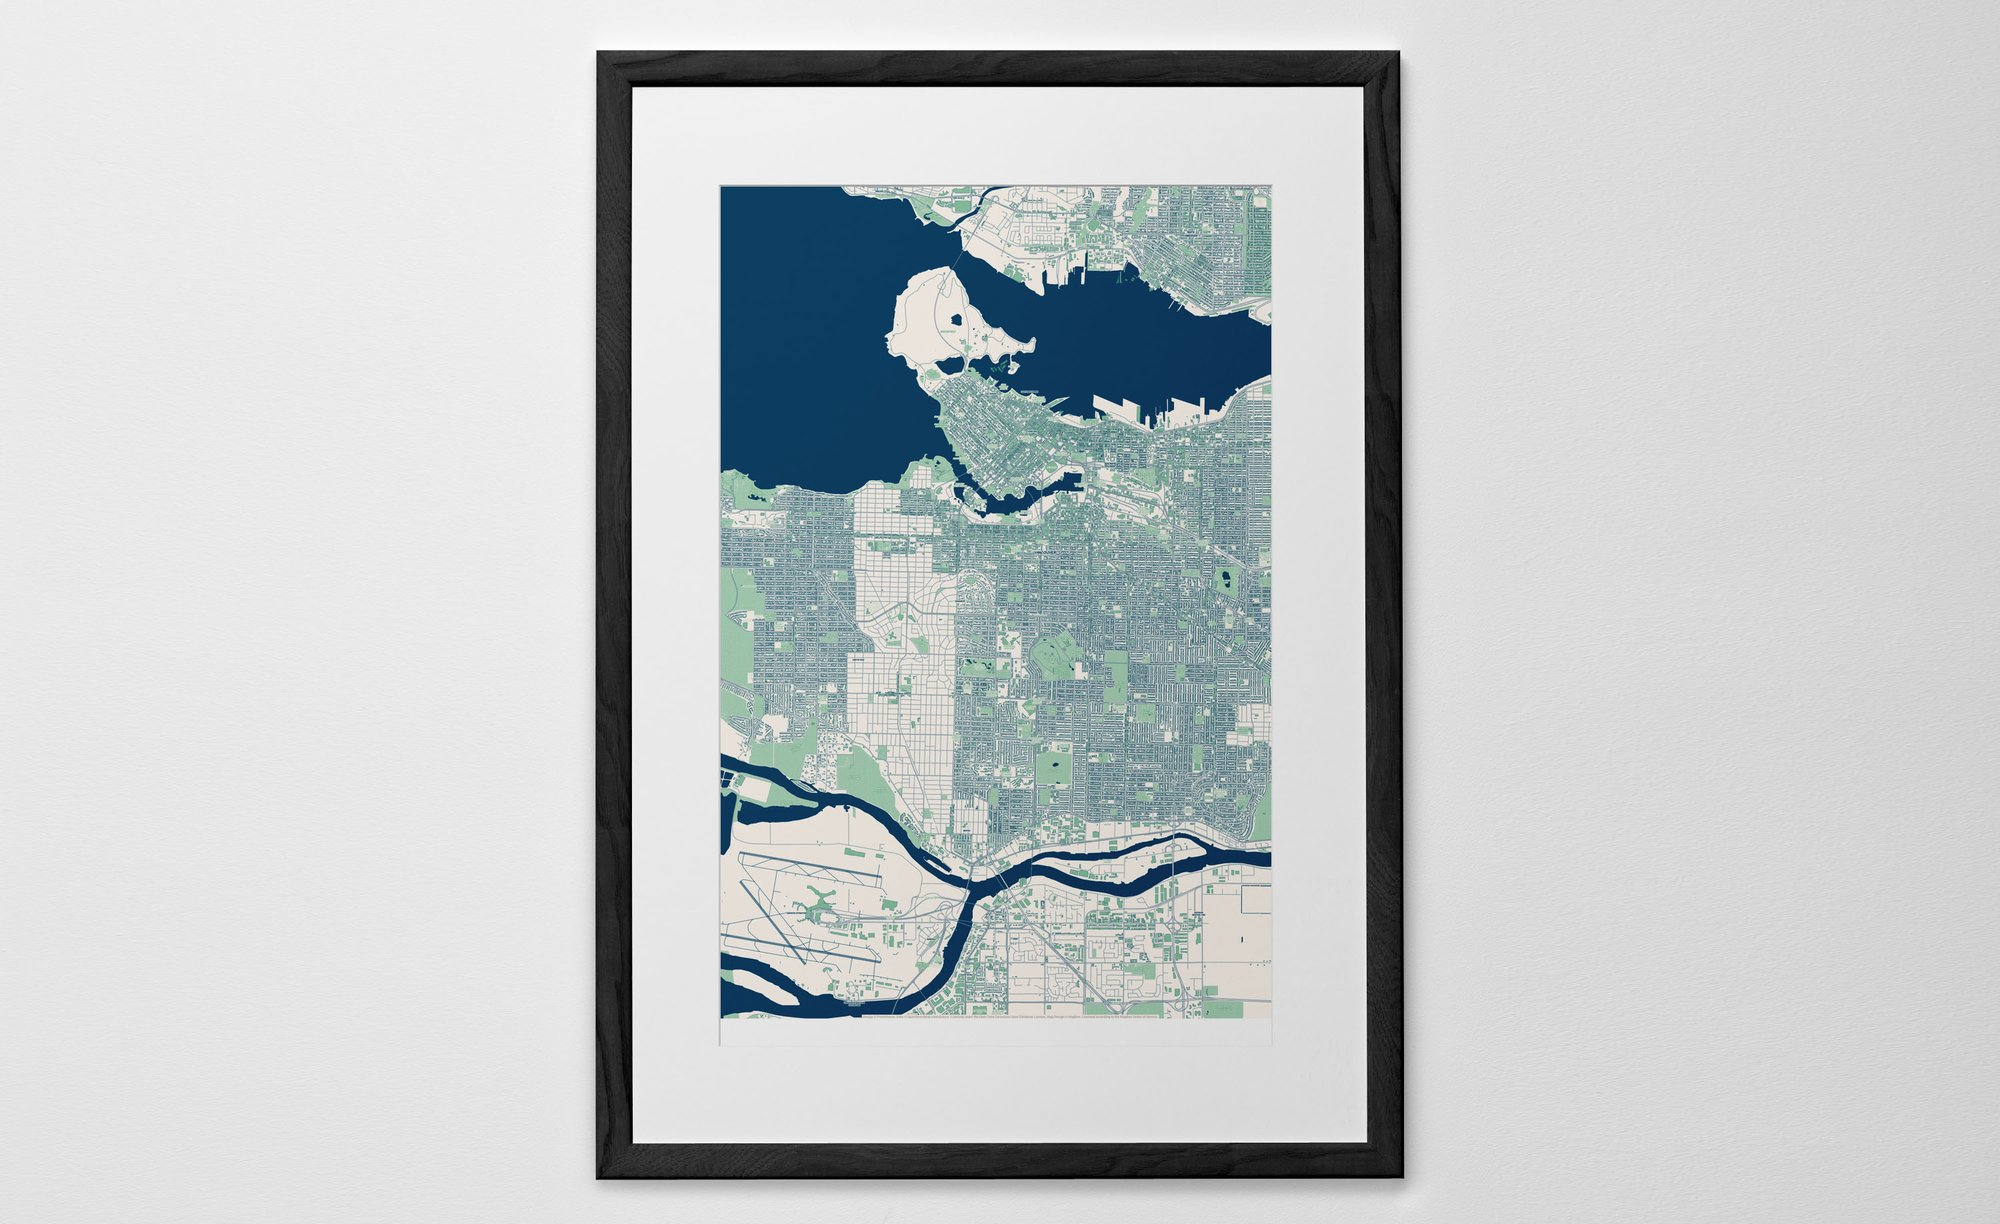 CUSTOM FRAMED CANVAS PRINTS CHOOSE YOURS ! LARGE SELECTION OF SIZES WORLD MAP